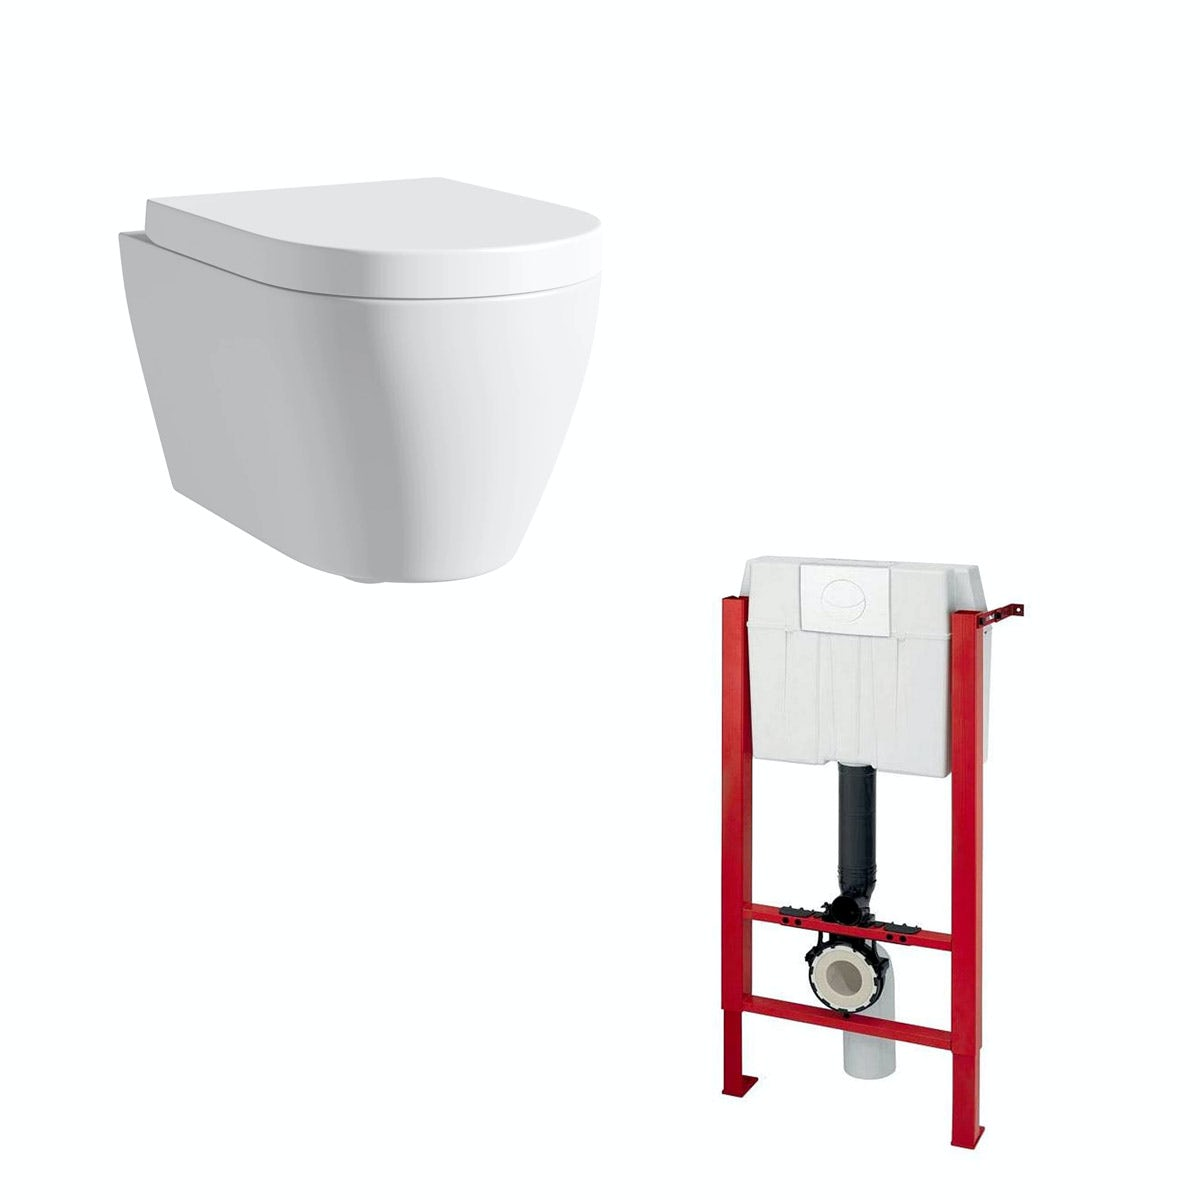 Mode Harrison wall hung toilet with soft close seat and mounting frame